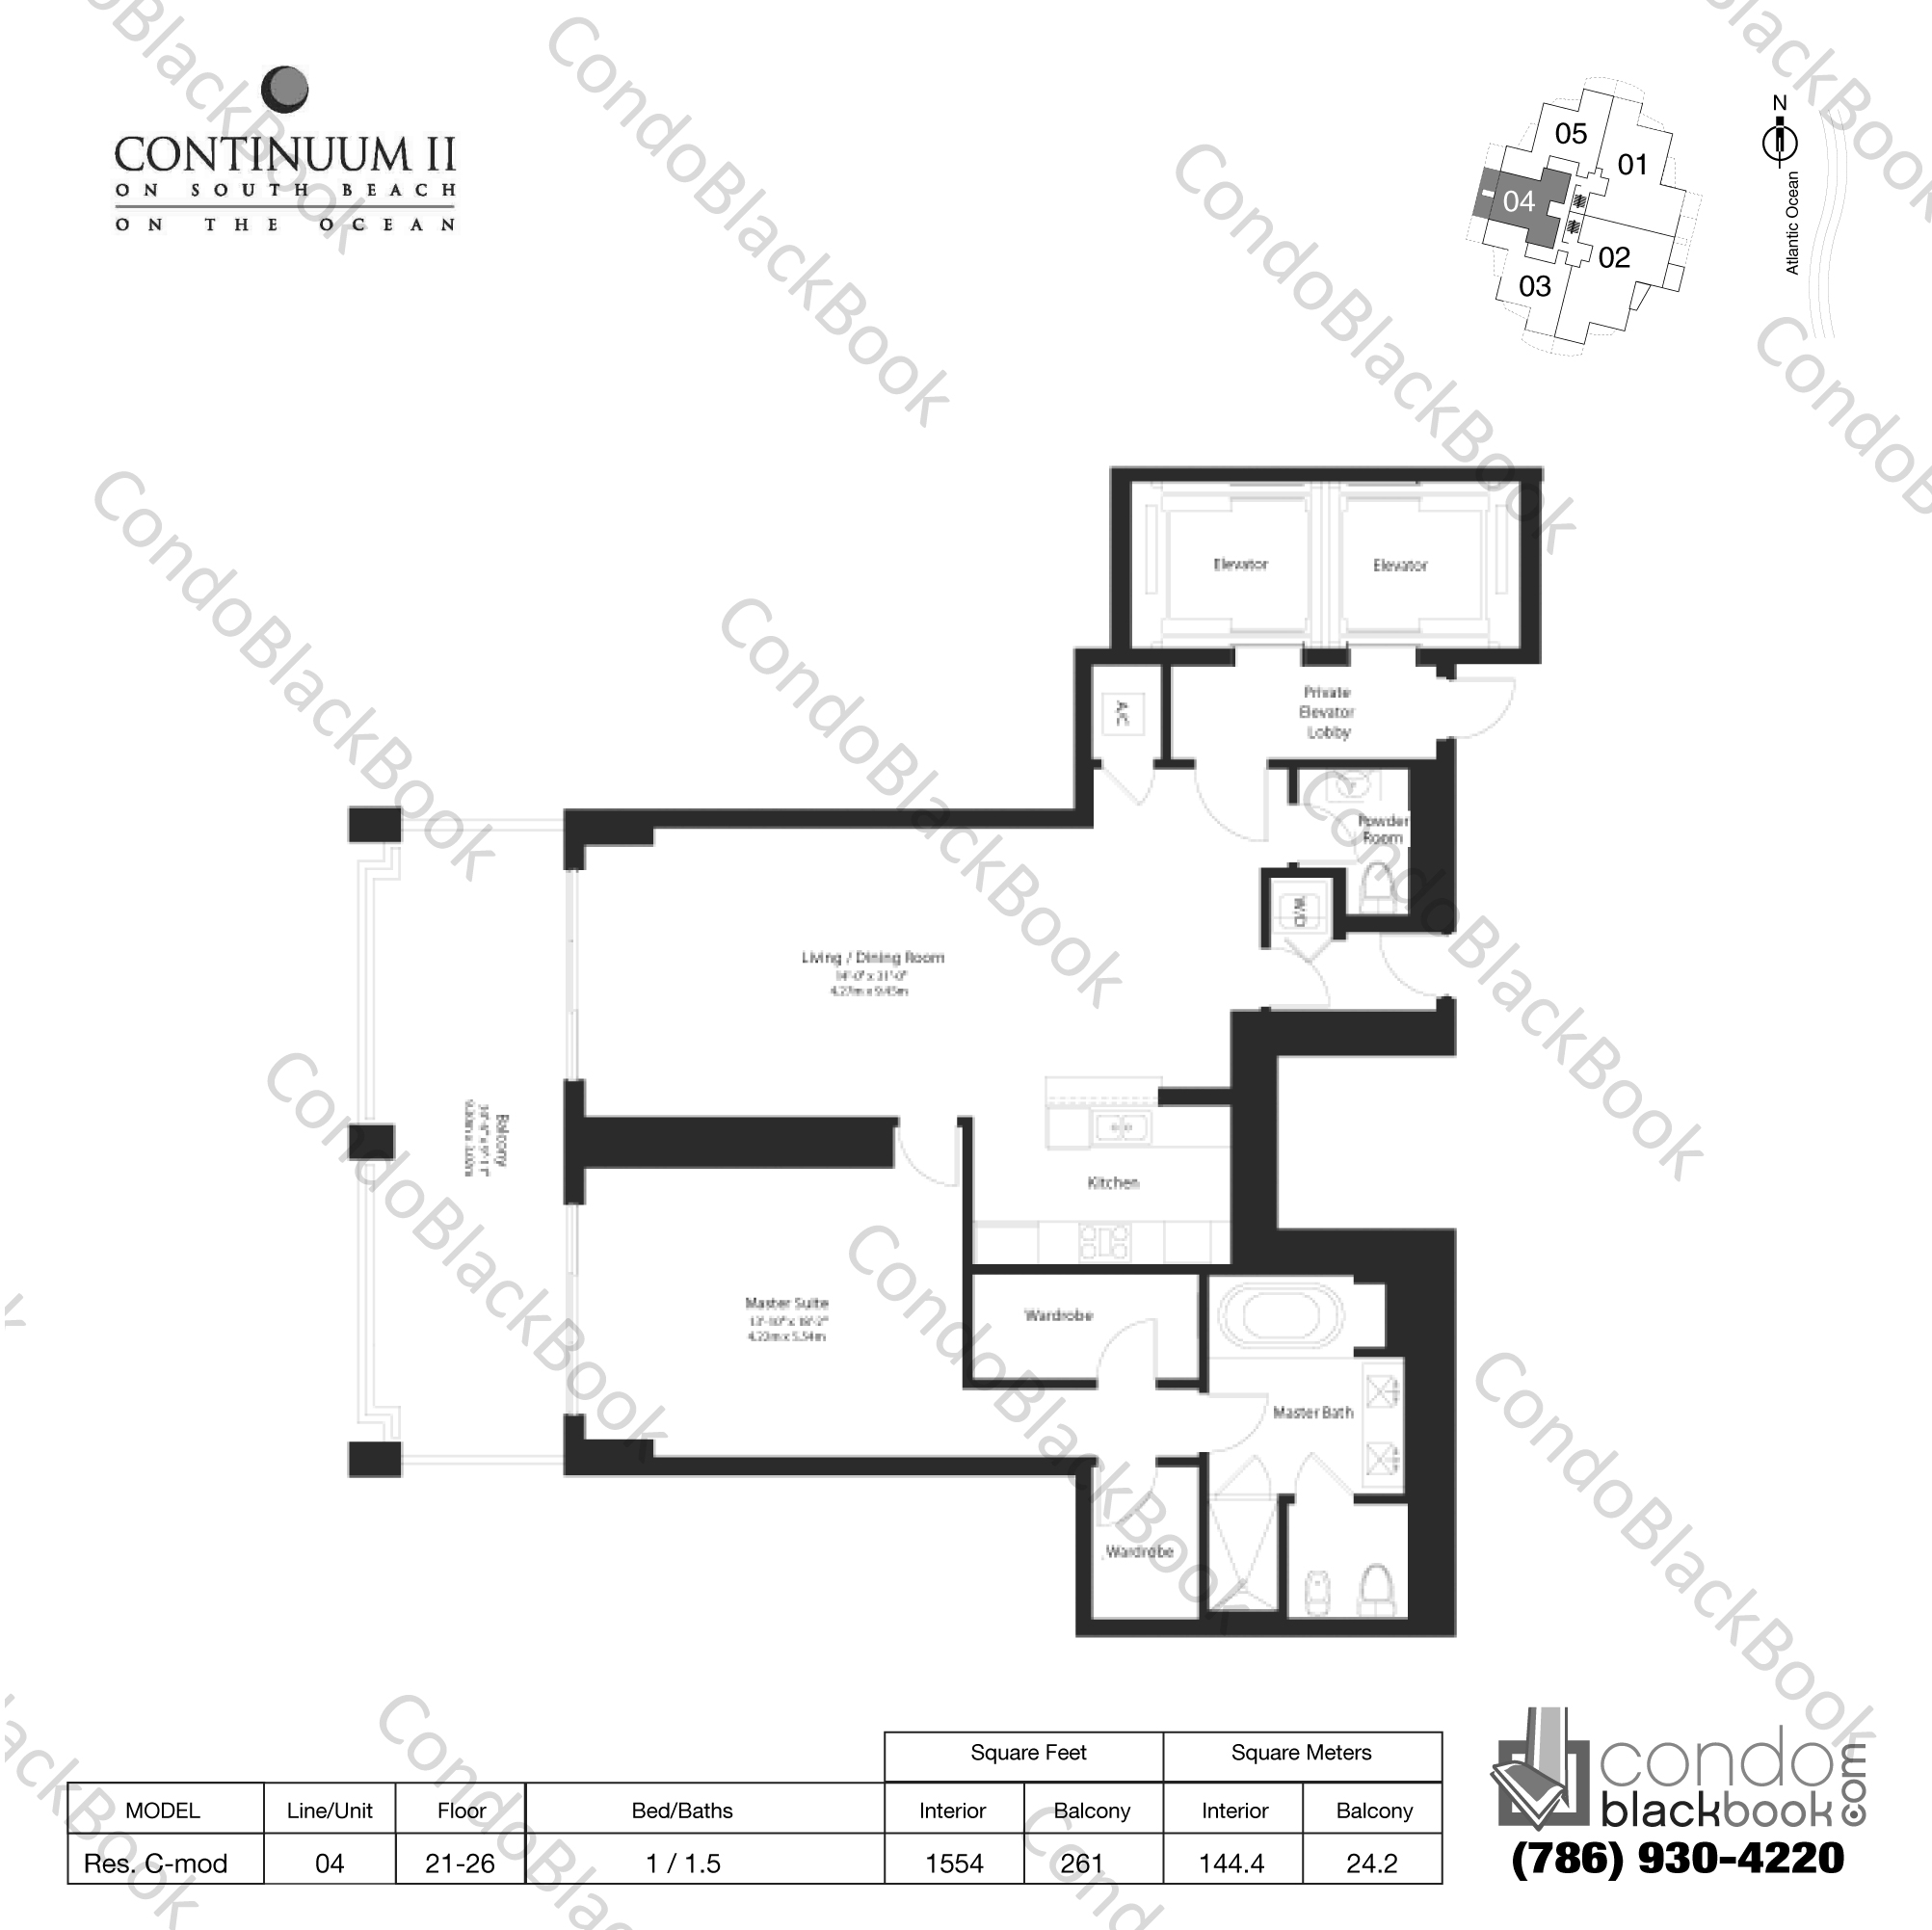 Floor plan for Continuum II North South Beach Miami Beach, model Res. C mod, line 04, 1 / 1.5 bedrooms, 1554 sq ft